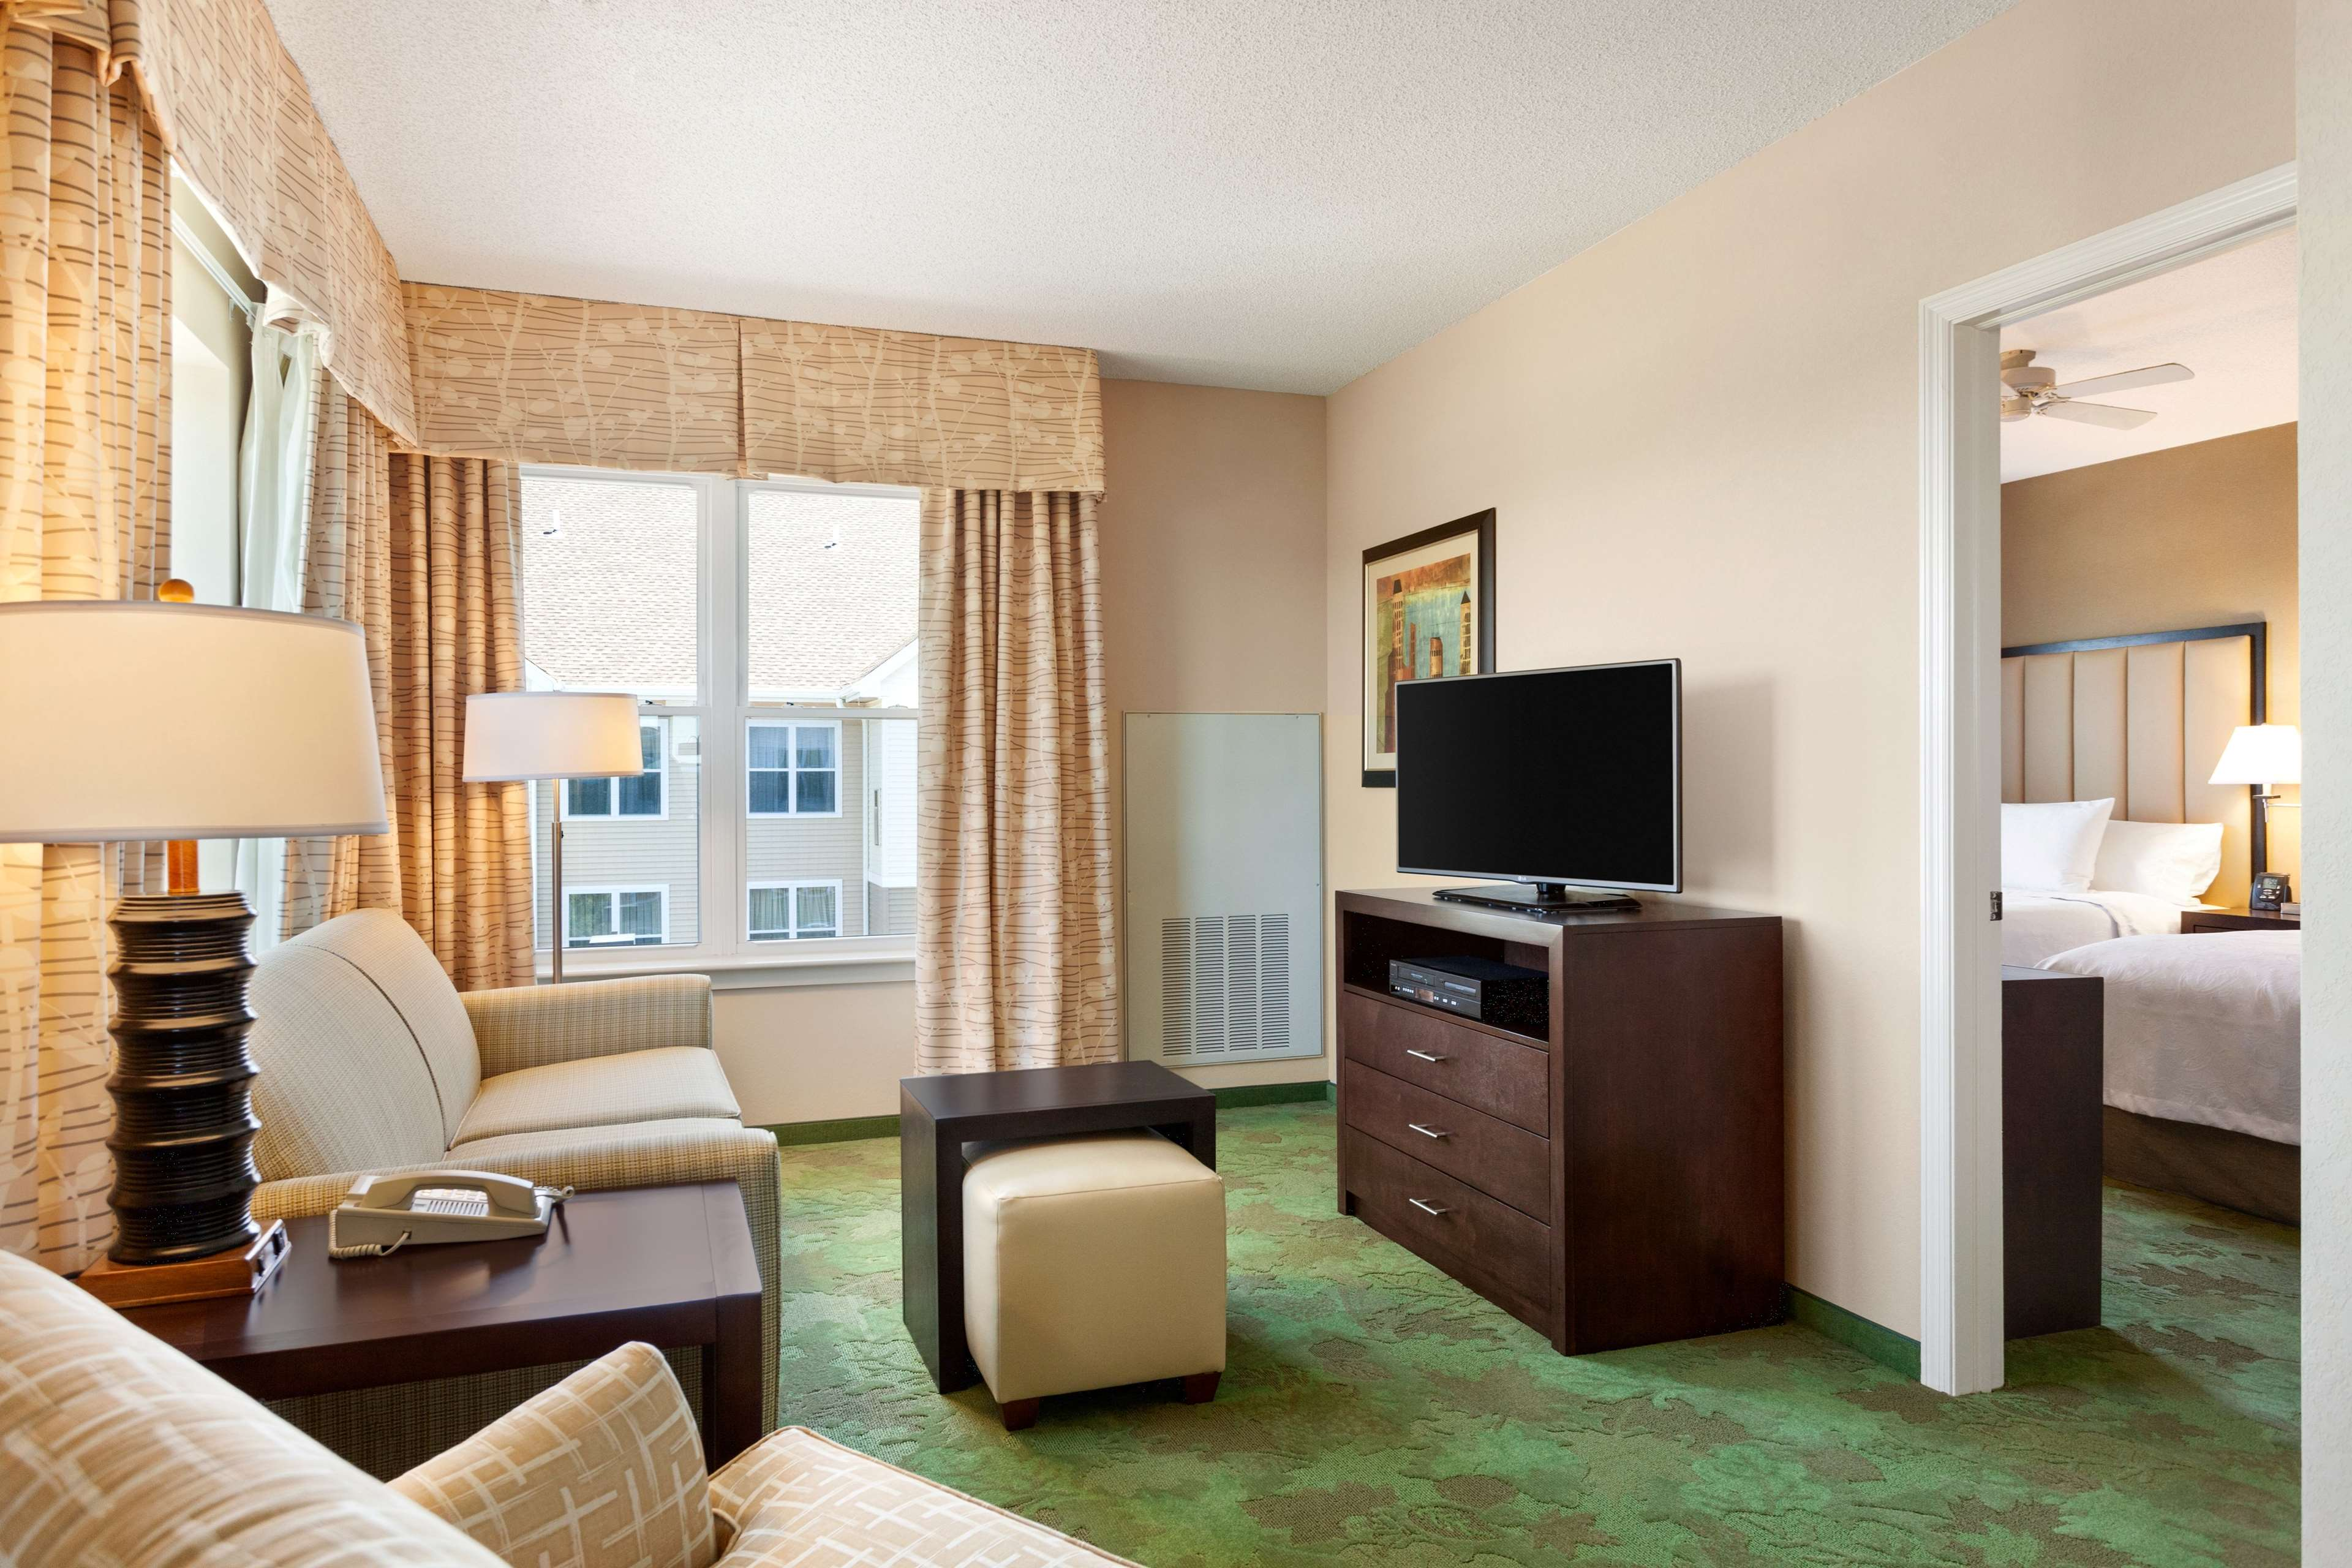 Homewood Suites by Hilton Reading image 30